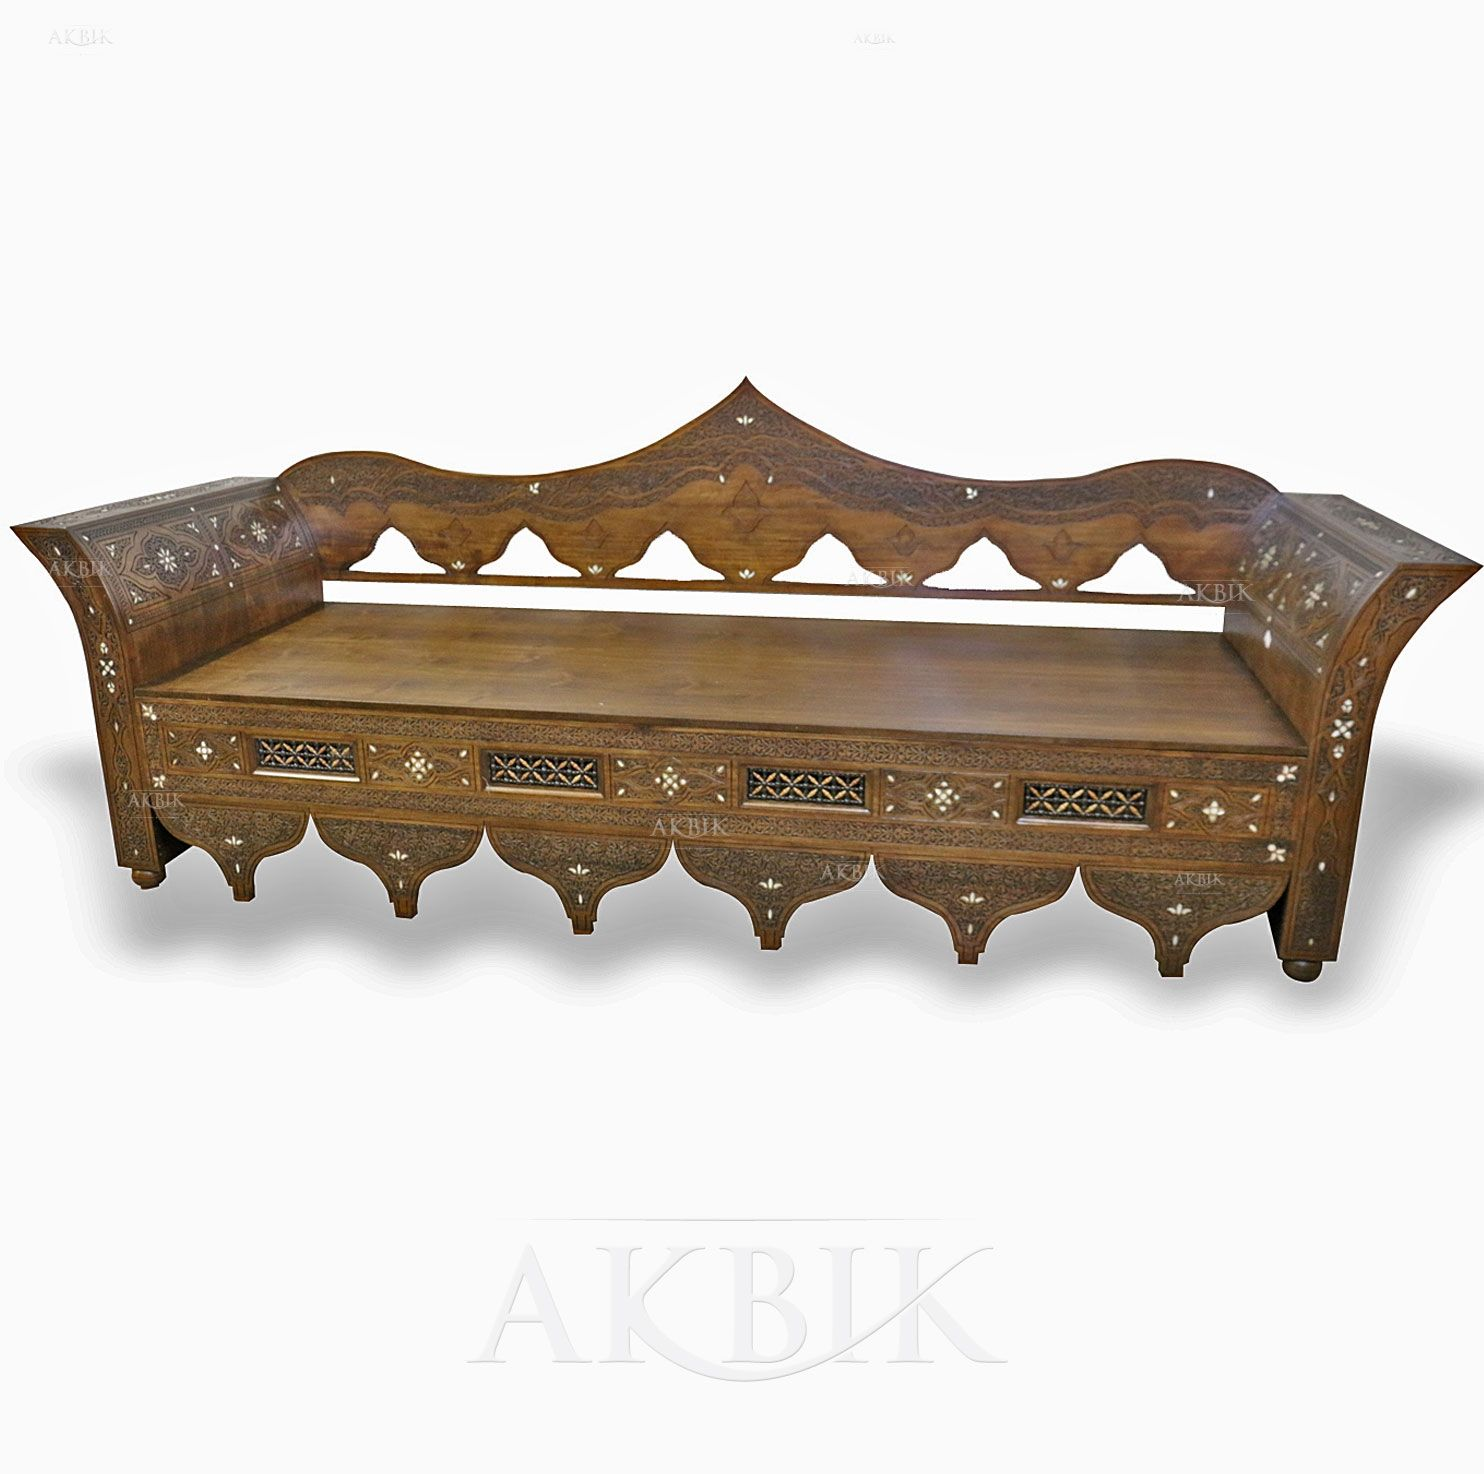 Mother Of Pearl Moroccan Syrian And Levantine Furniture Exotic Wooden Bench Hand Made In Damascus Syria